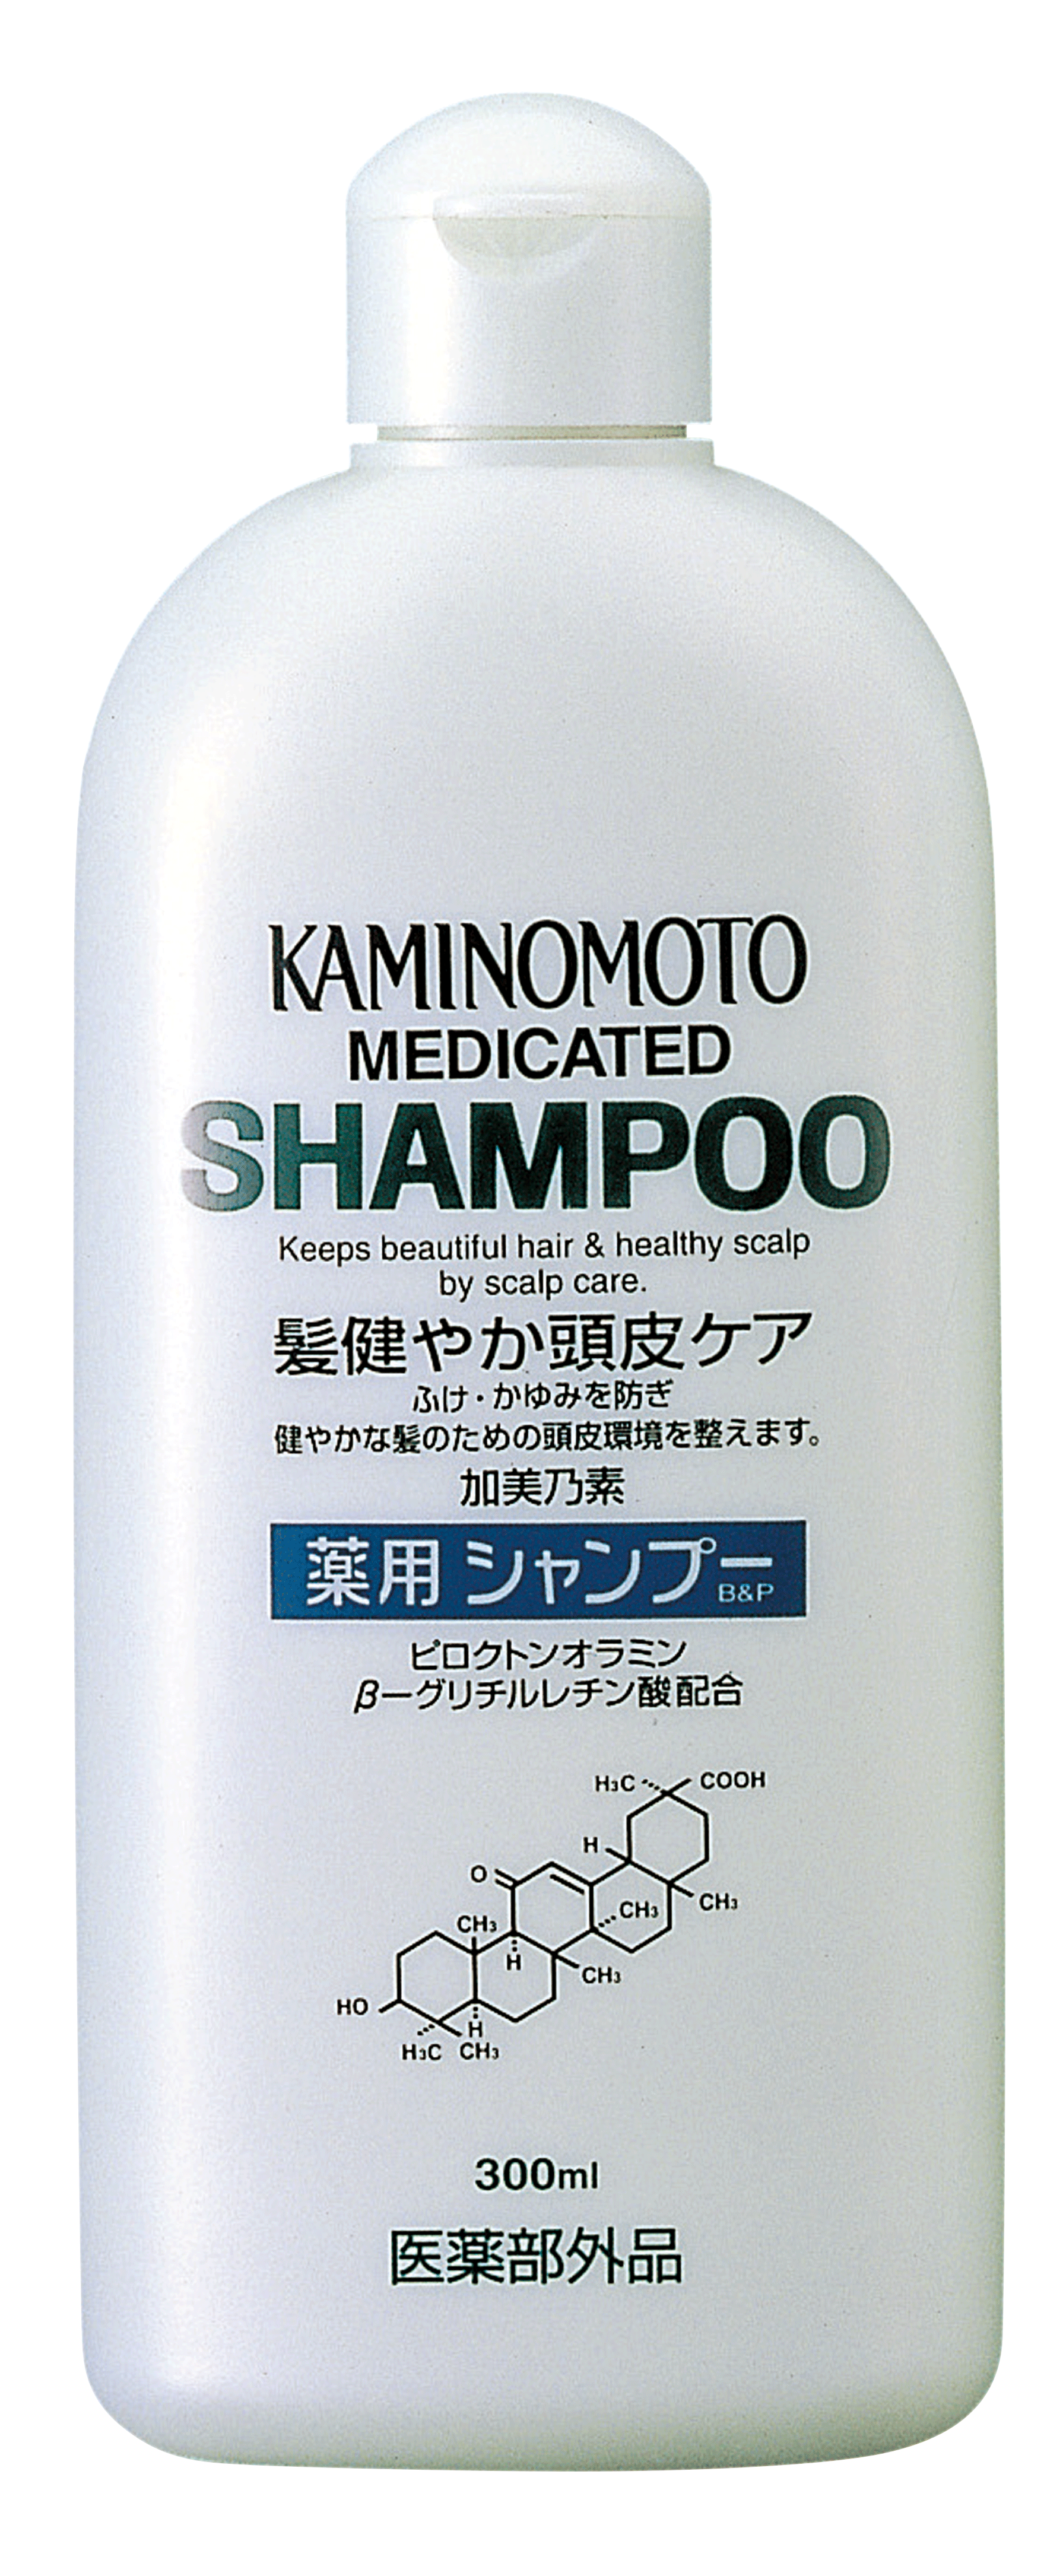 Kaminomoto Hair Conditioner Bp Putih Spec Dan Daftar Harga Paket Shampo Syoss Oleo Intense 190ml 2 1 Medicated Shampoo B P